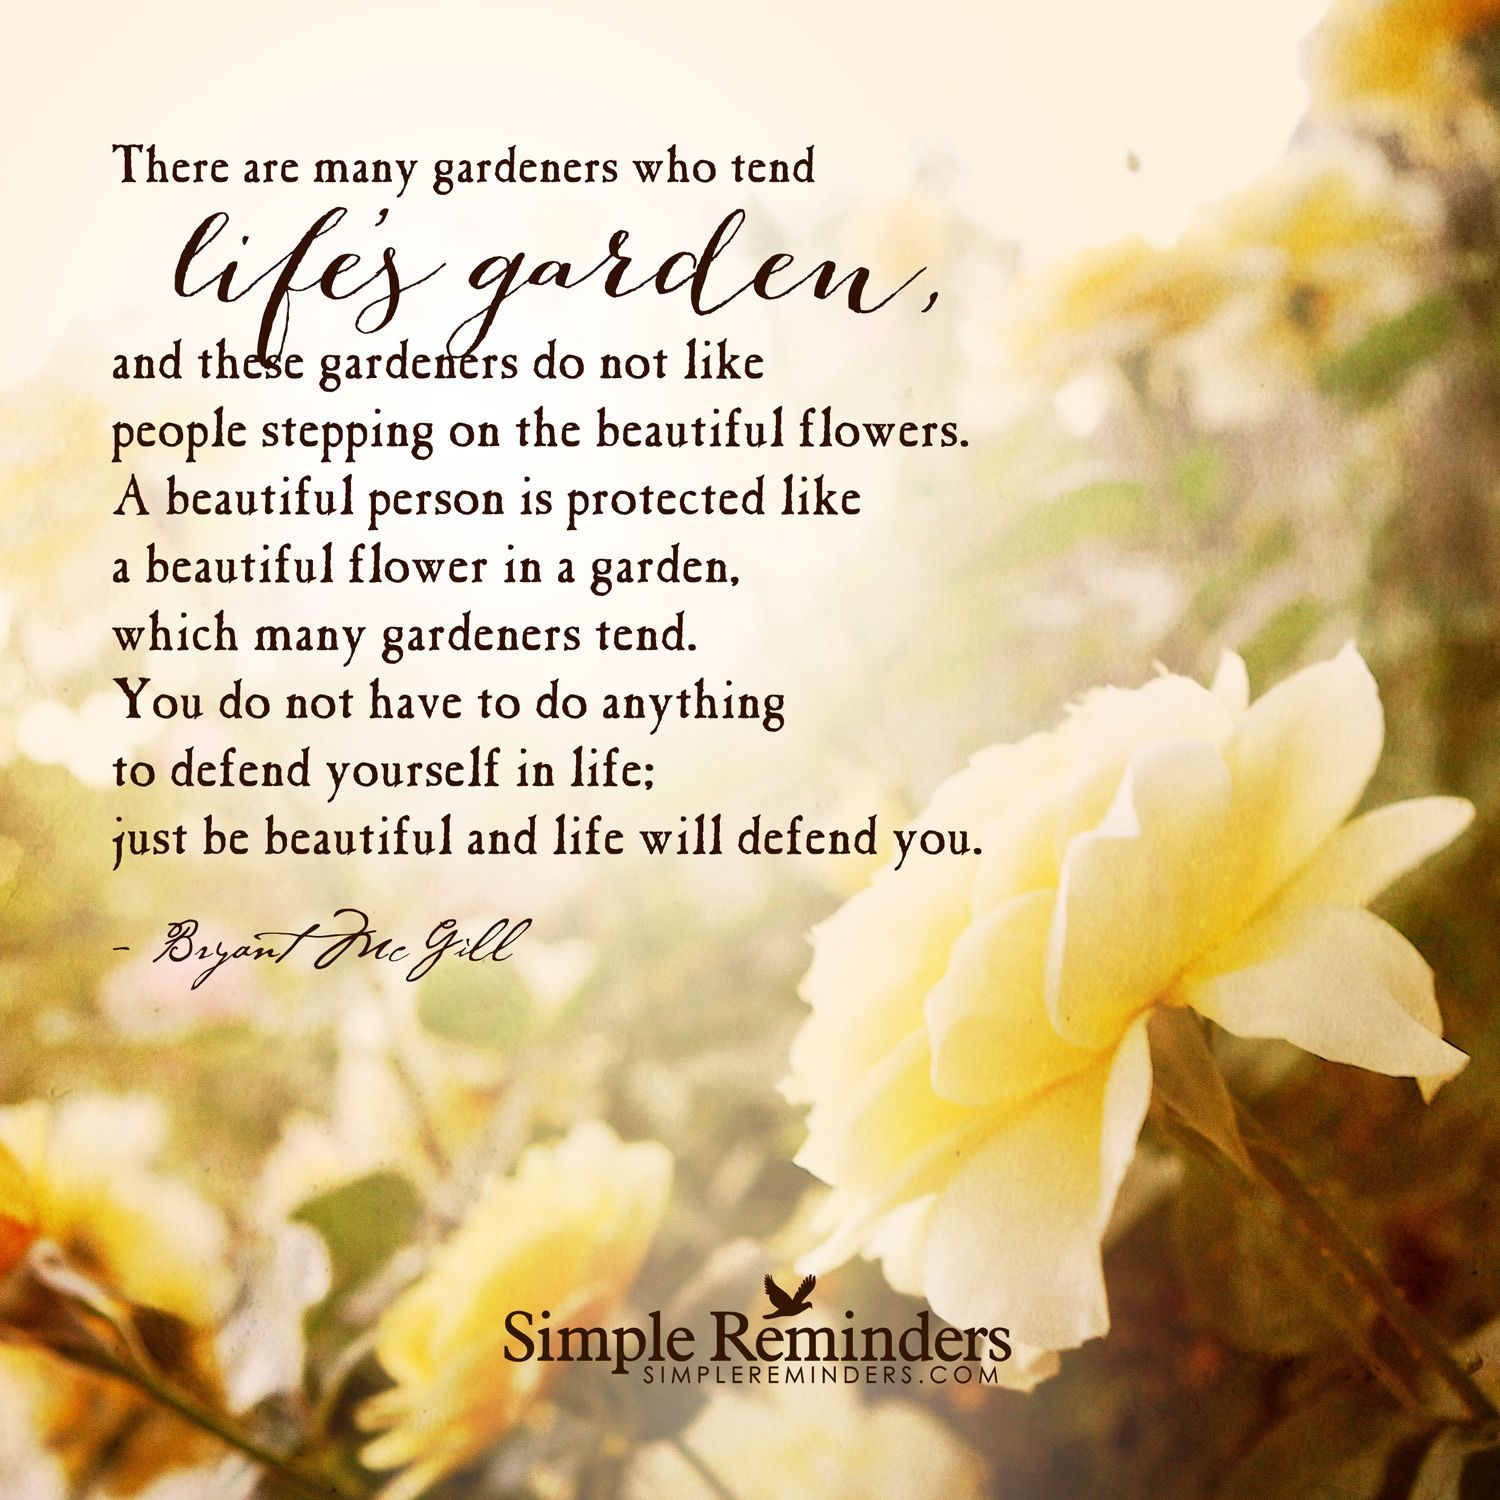 Garden House Beautiful Magazine Inspires Garden Lovers: Being Love-filled And Beautiful Is Almost Unconquerable